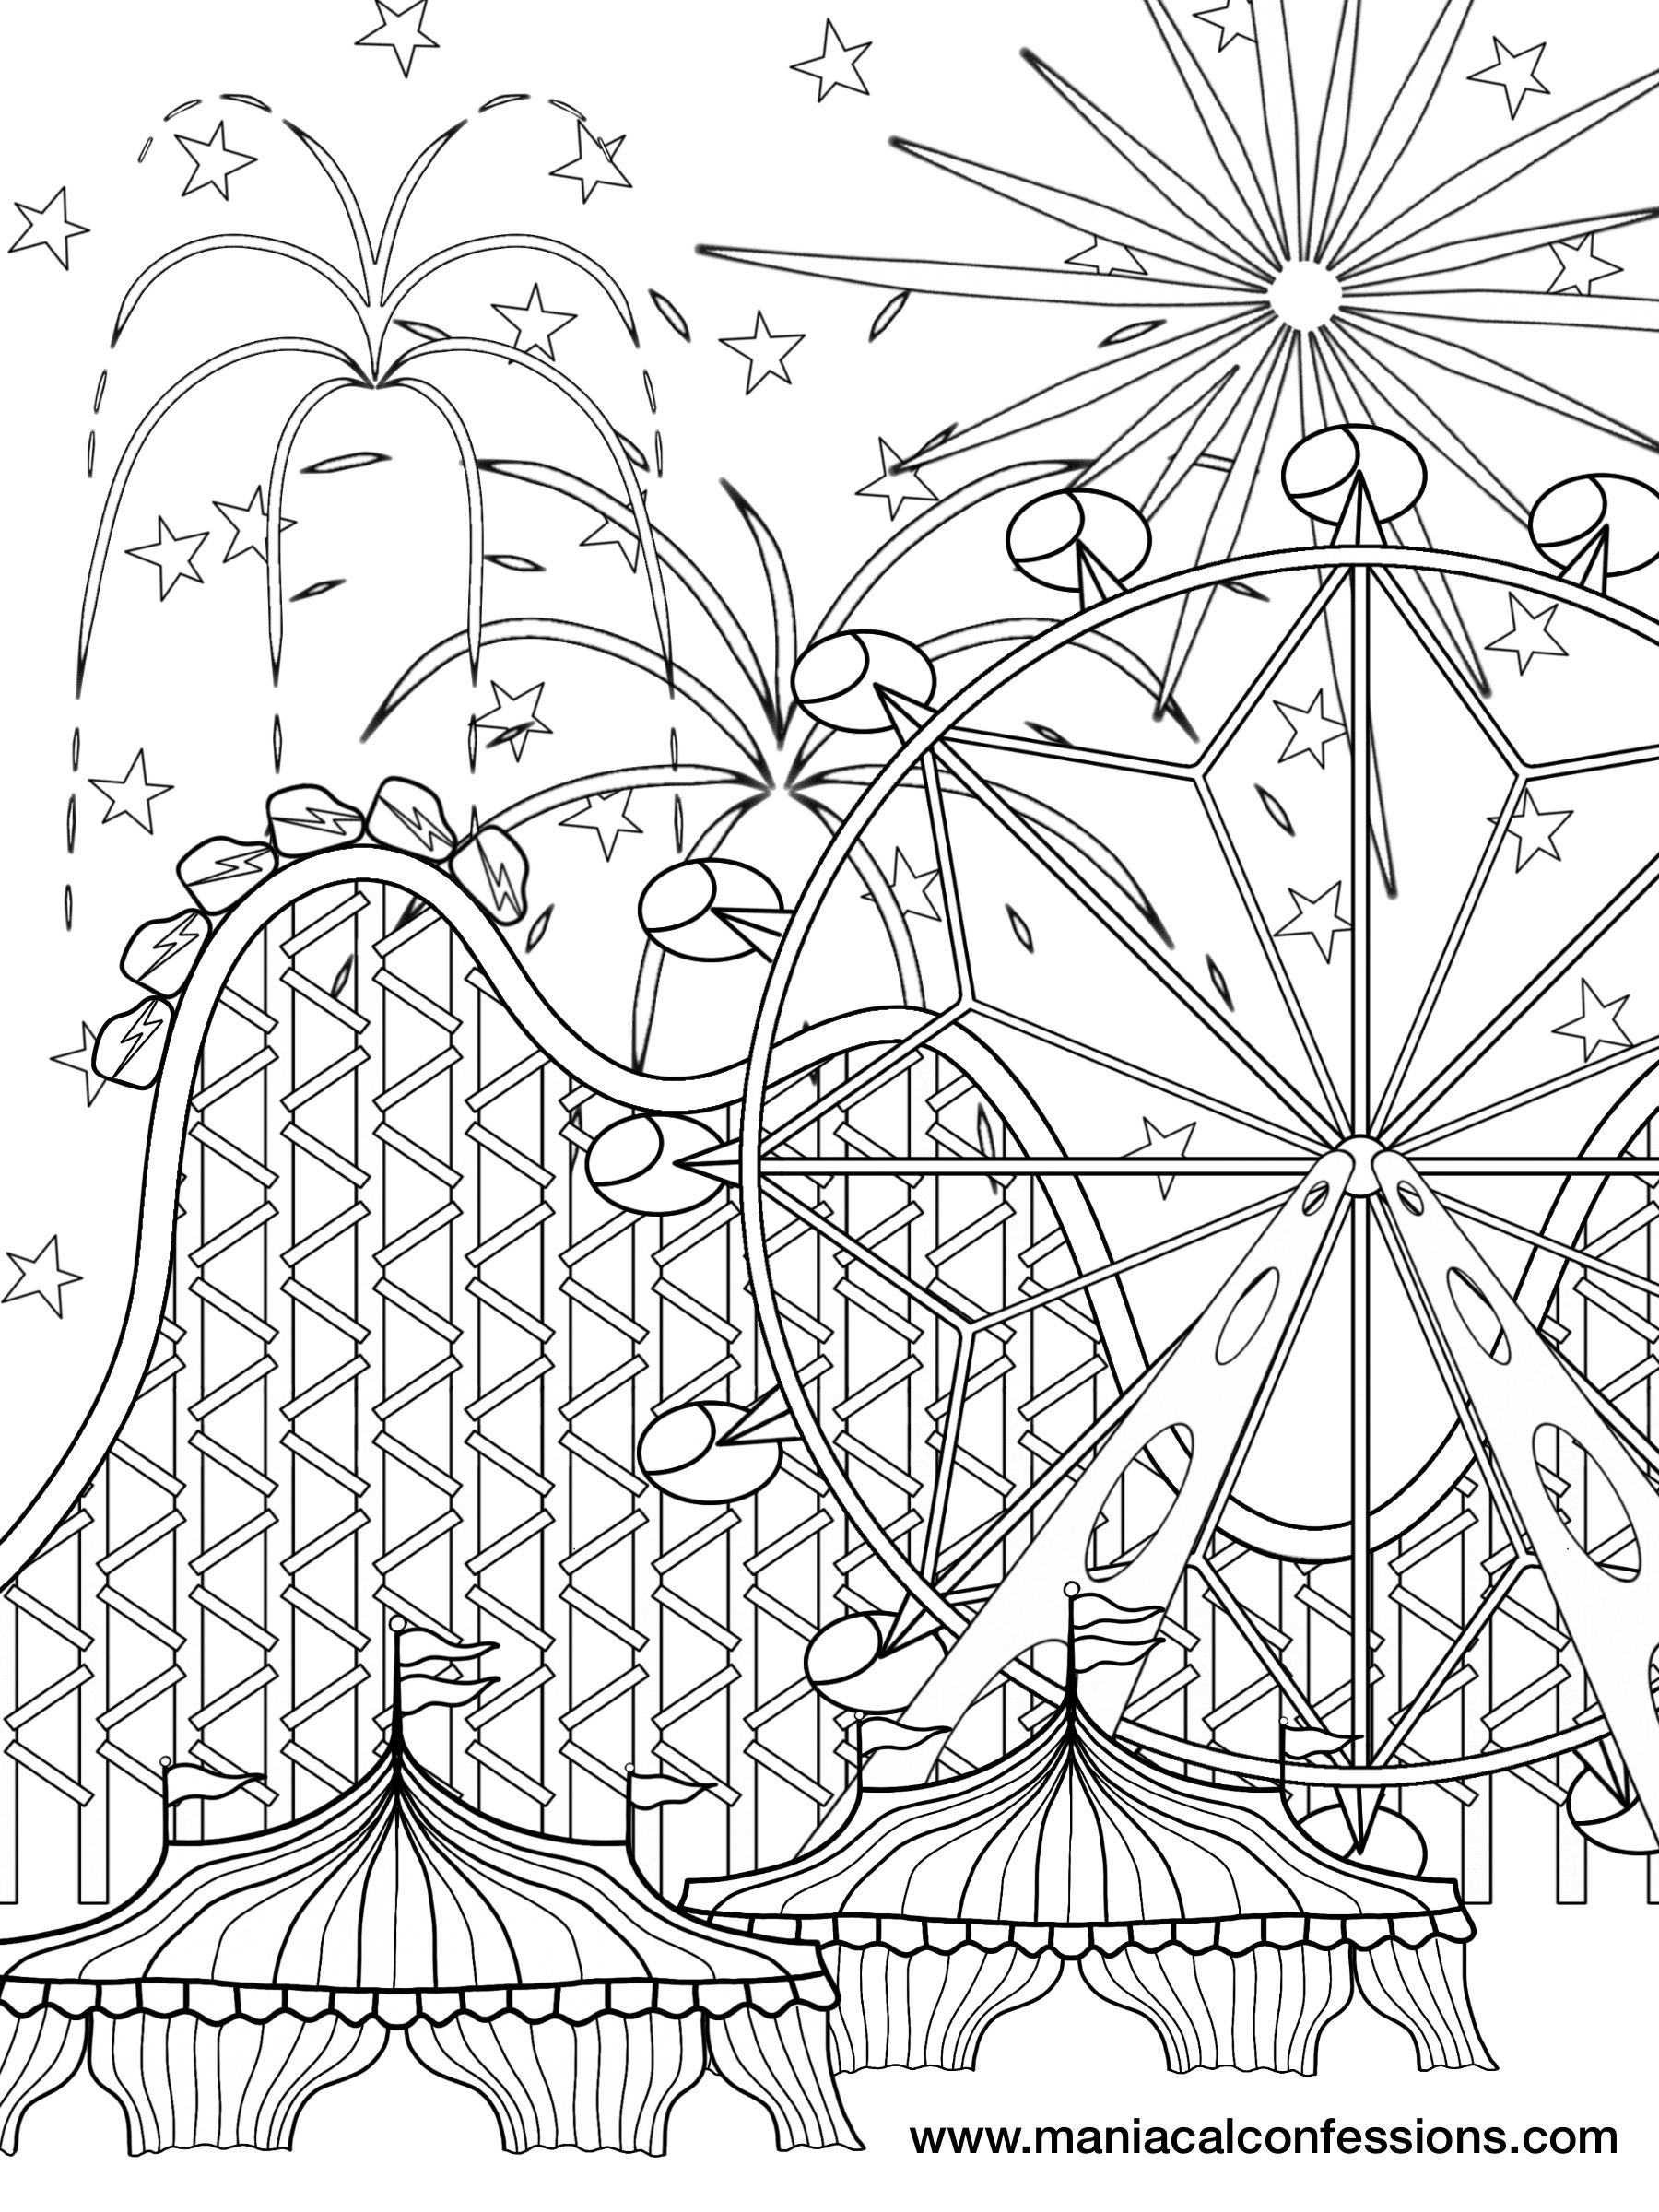 FREE DOWNLOADABLE PICS! | Maniacal Confessions | Coloriage DECOR ...